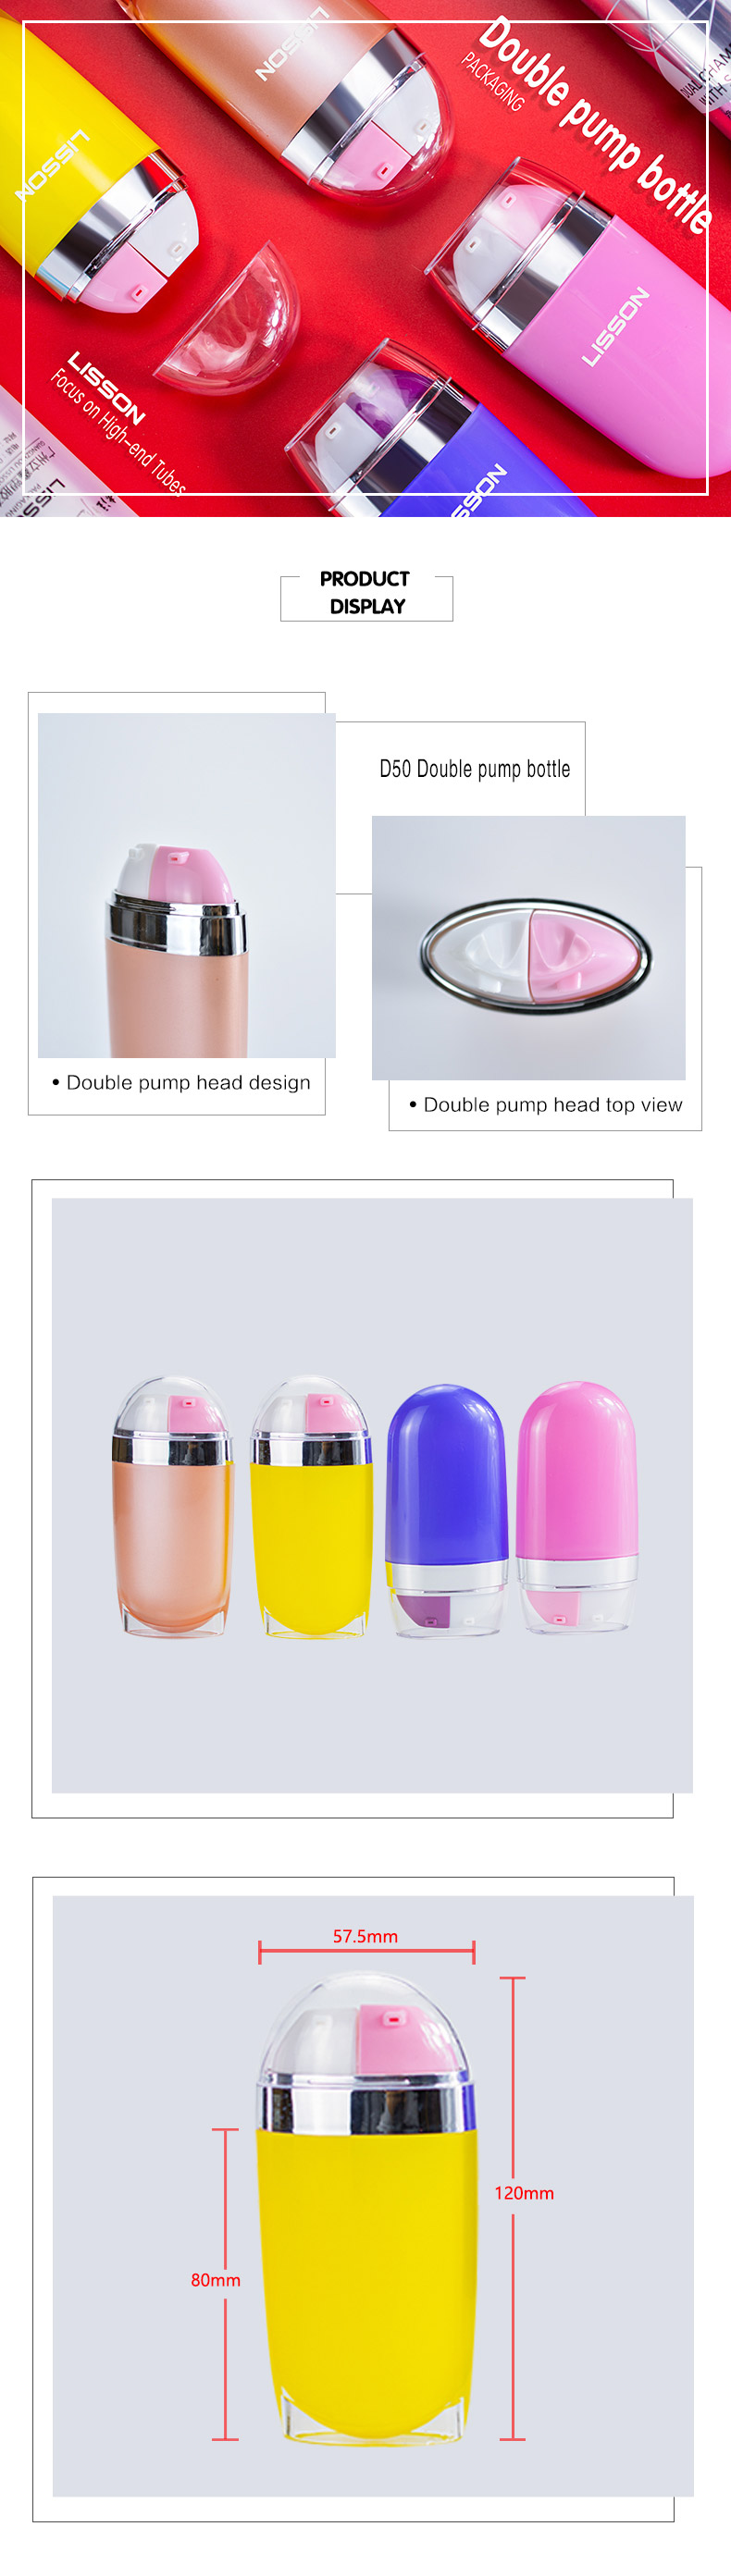 40ml Double Airless Pump Bottle